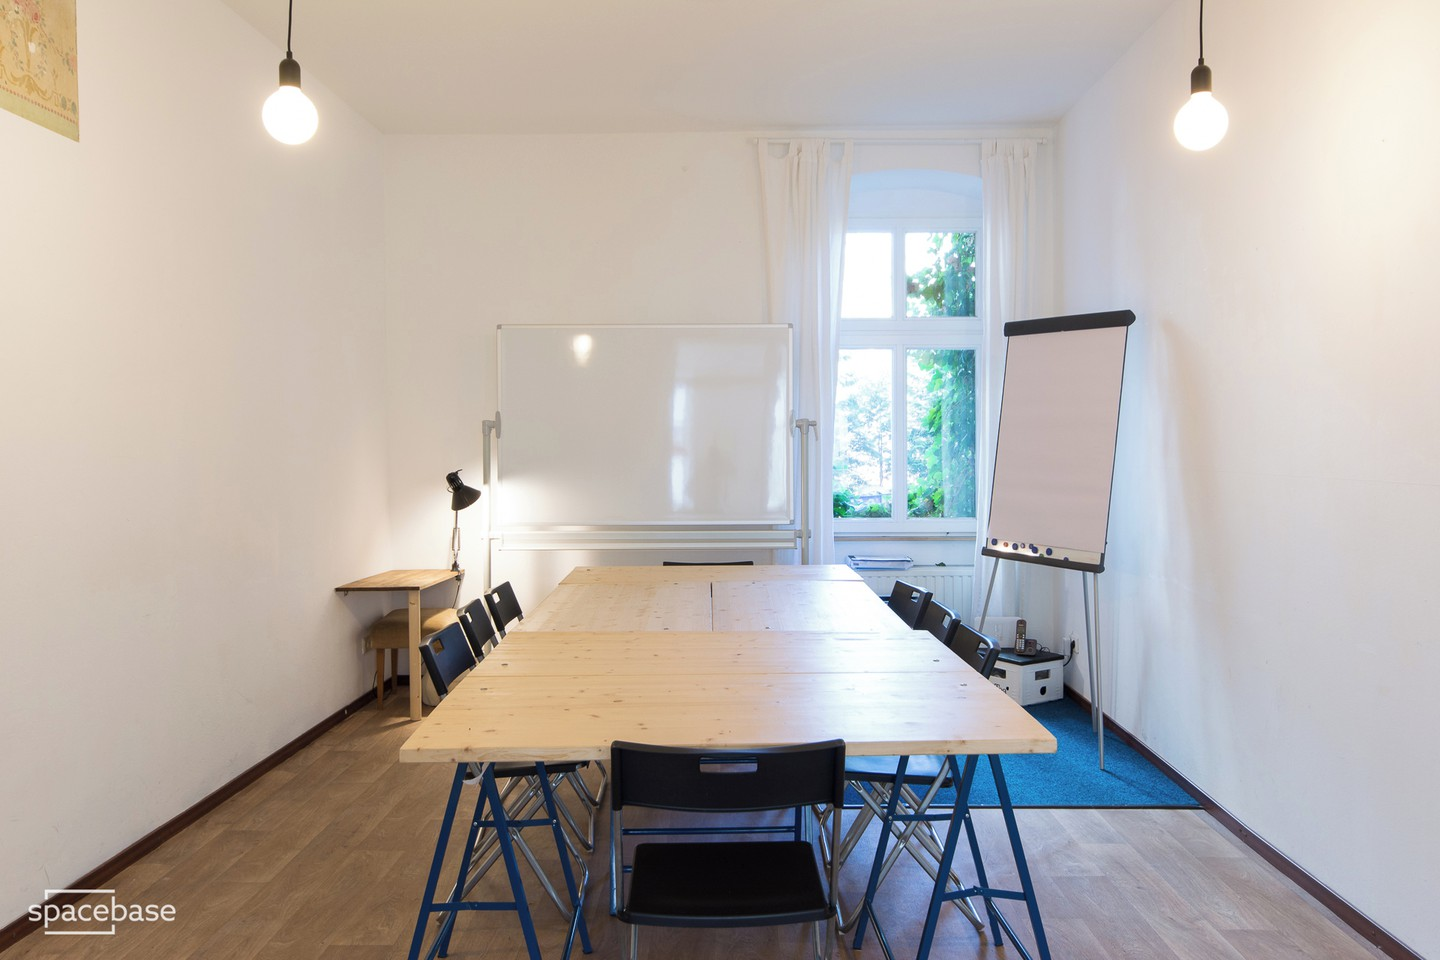 Berlin workshop spaces Lieu Atypique Guice - Creative Workshopspace image 2